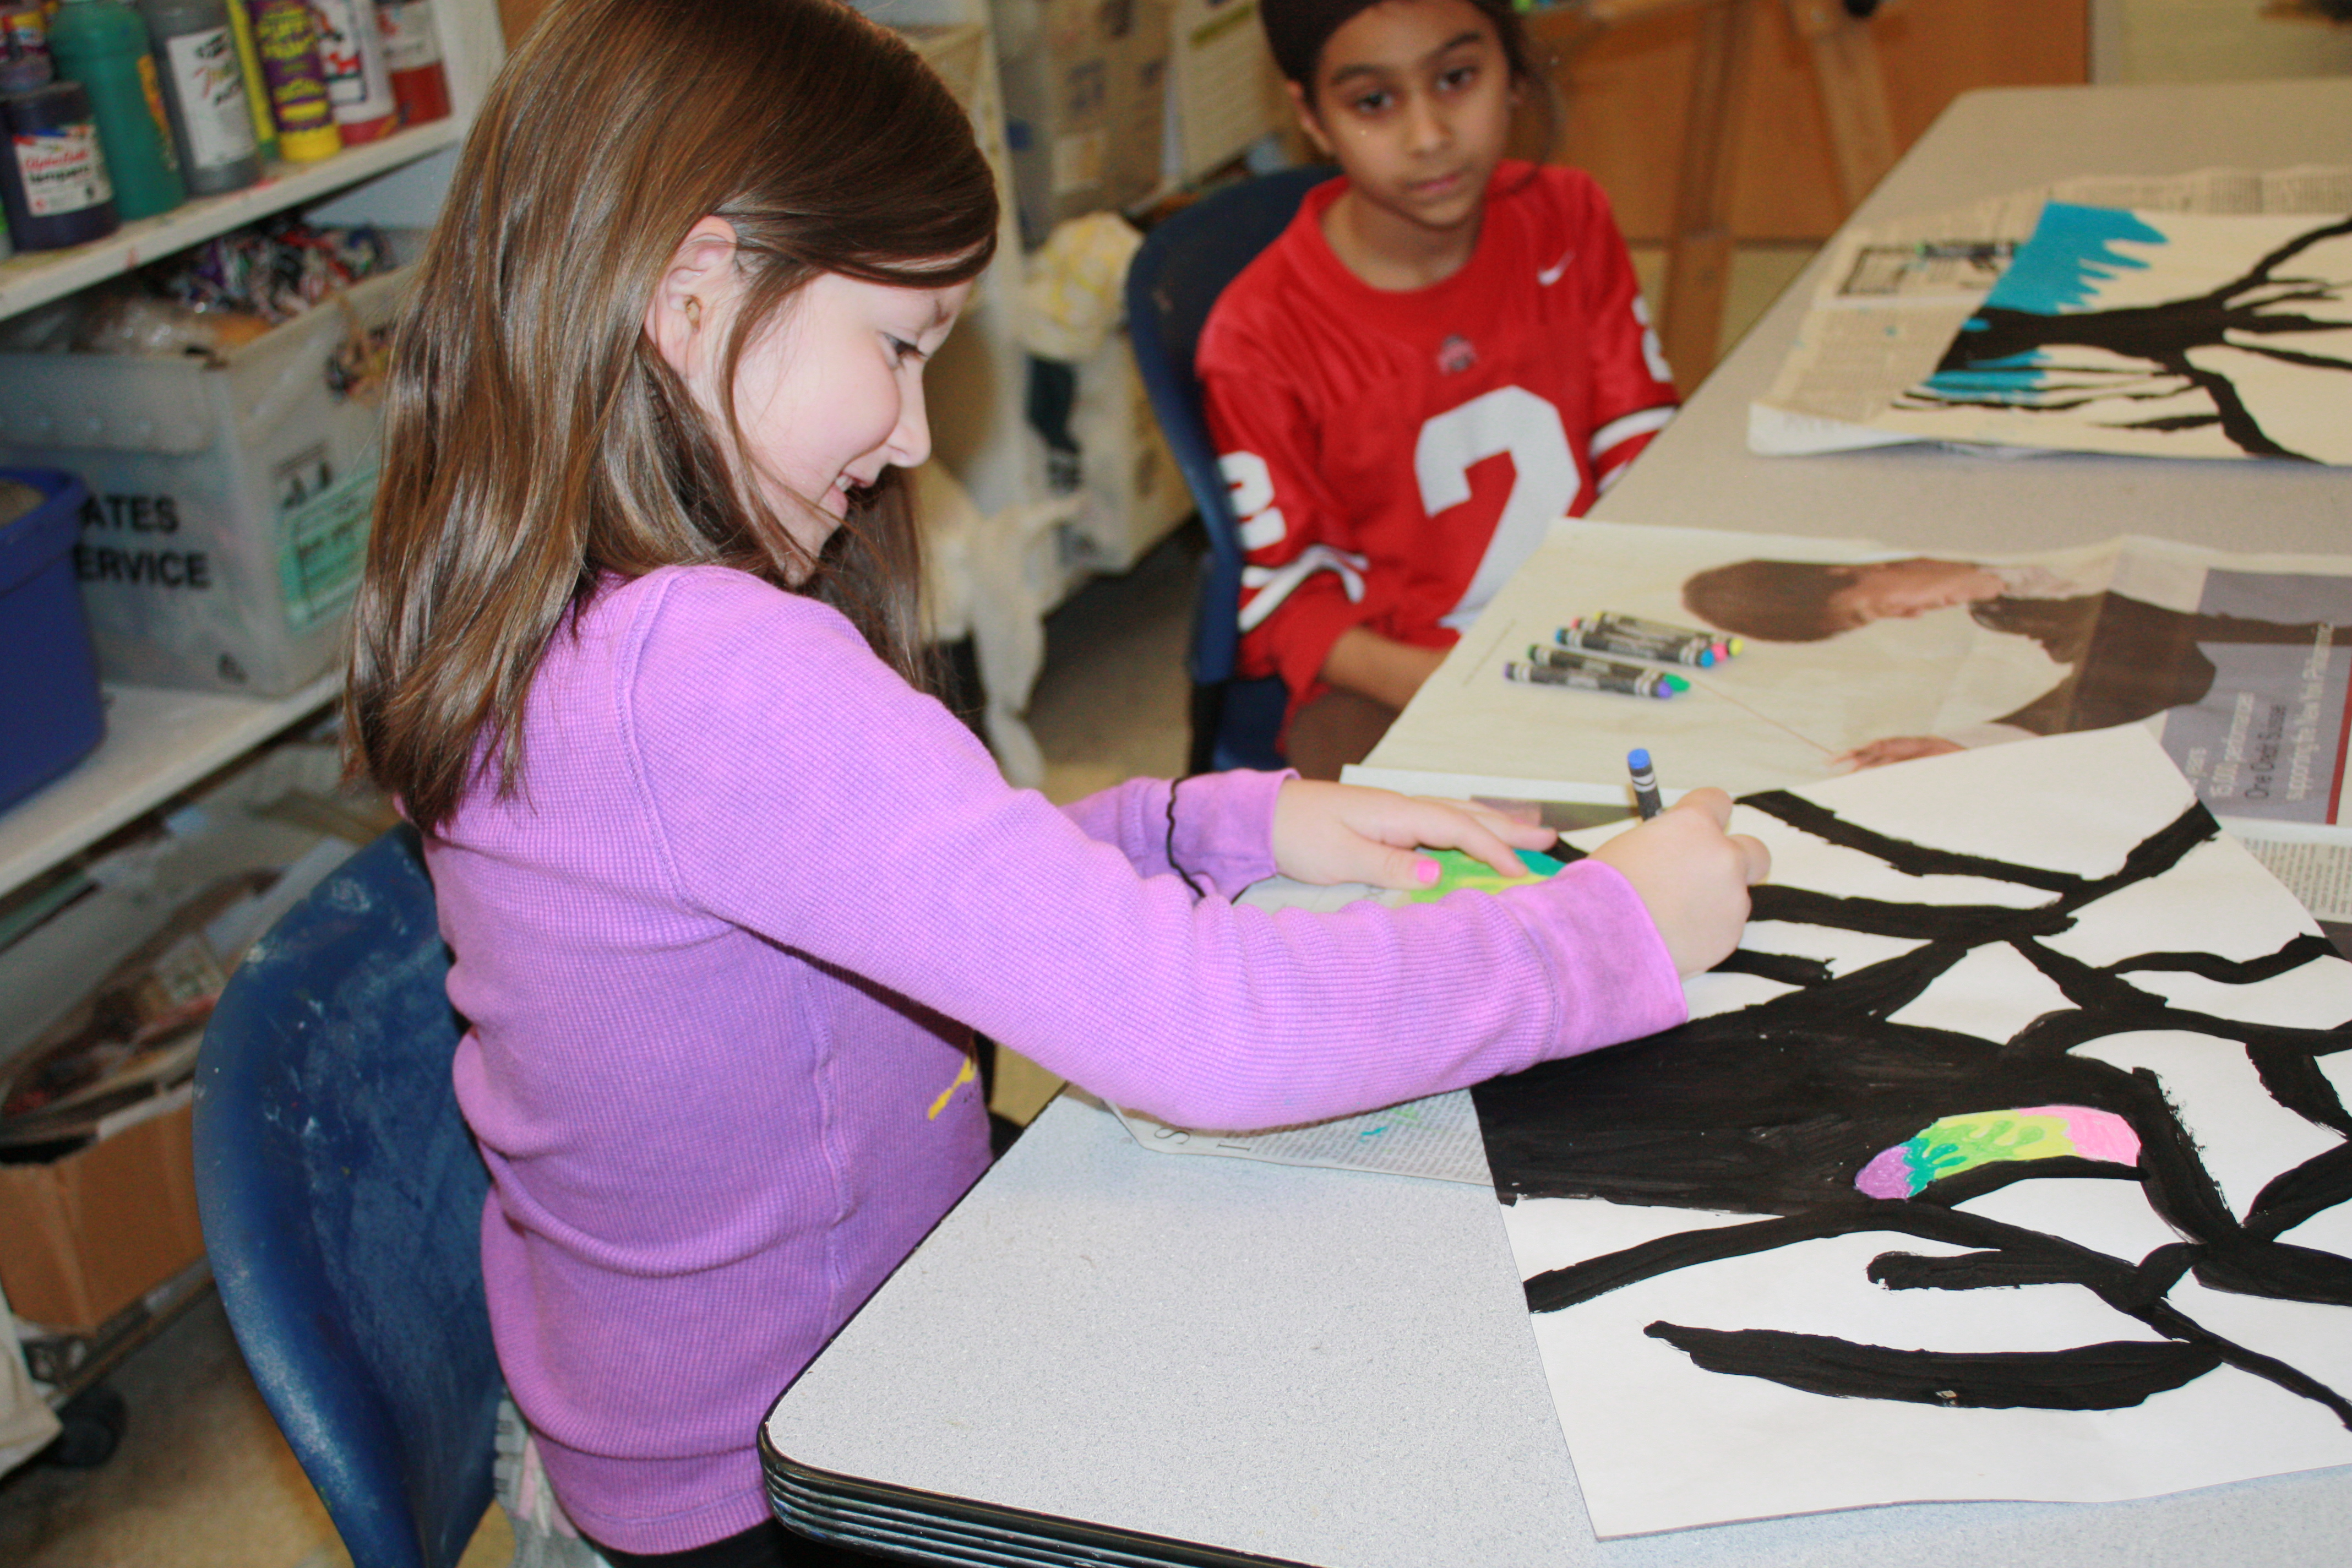 Students enjoy working on art in the Arts4Kids After School Program